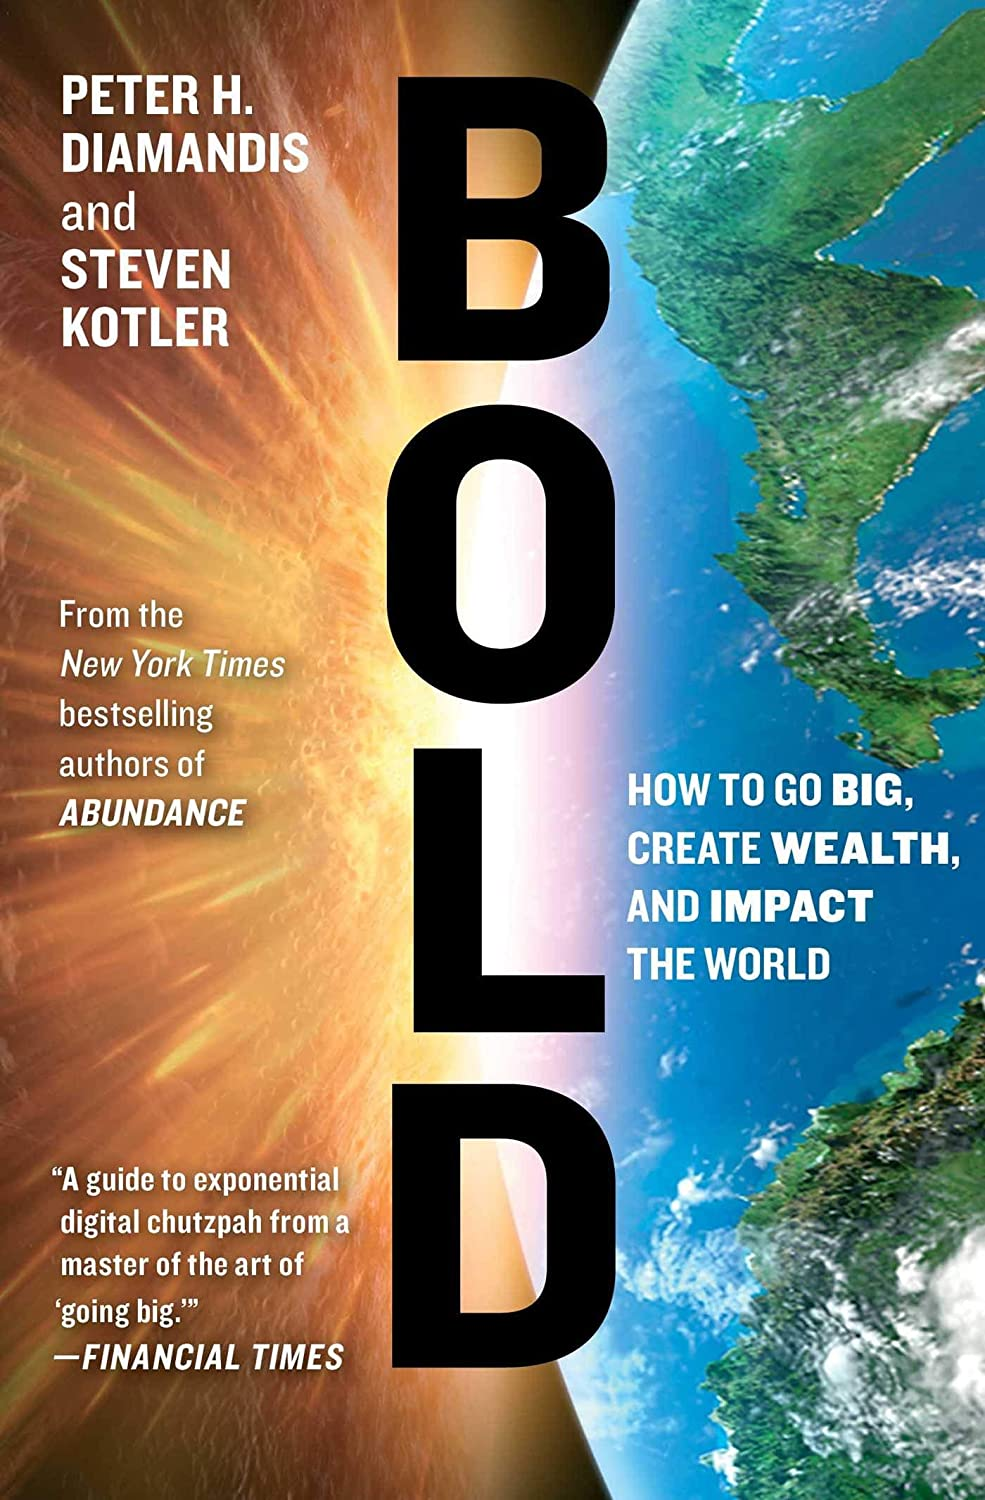 Amazon.com : [Peter H. Diamandis] Bold: How to Go Big, Create Wealth and  Impact The World (Exponential Technology Series) - Paperback : Office  Products